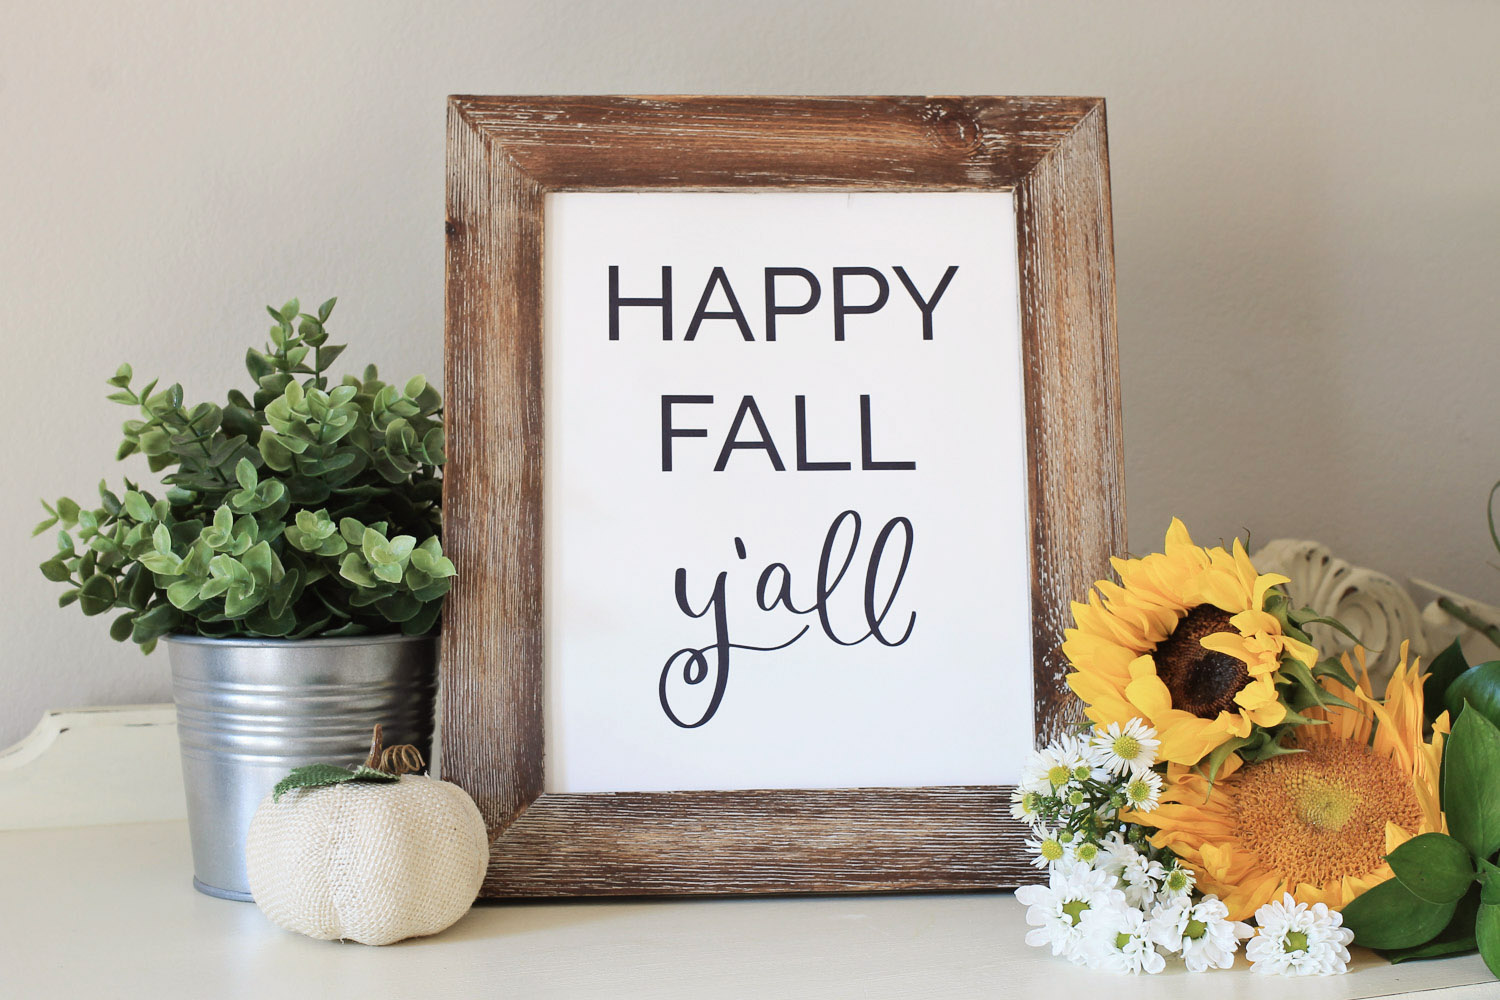 photo about Happy Fall Yall Printable known as Joyful Drop Yall Printable - Angela Marie Generated